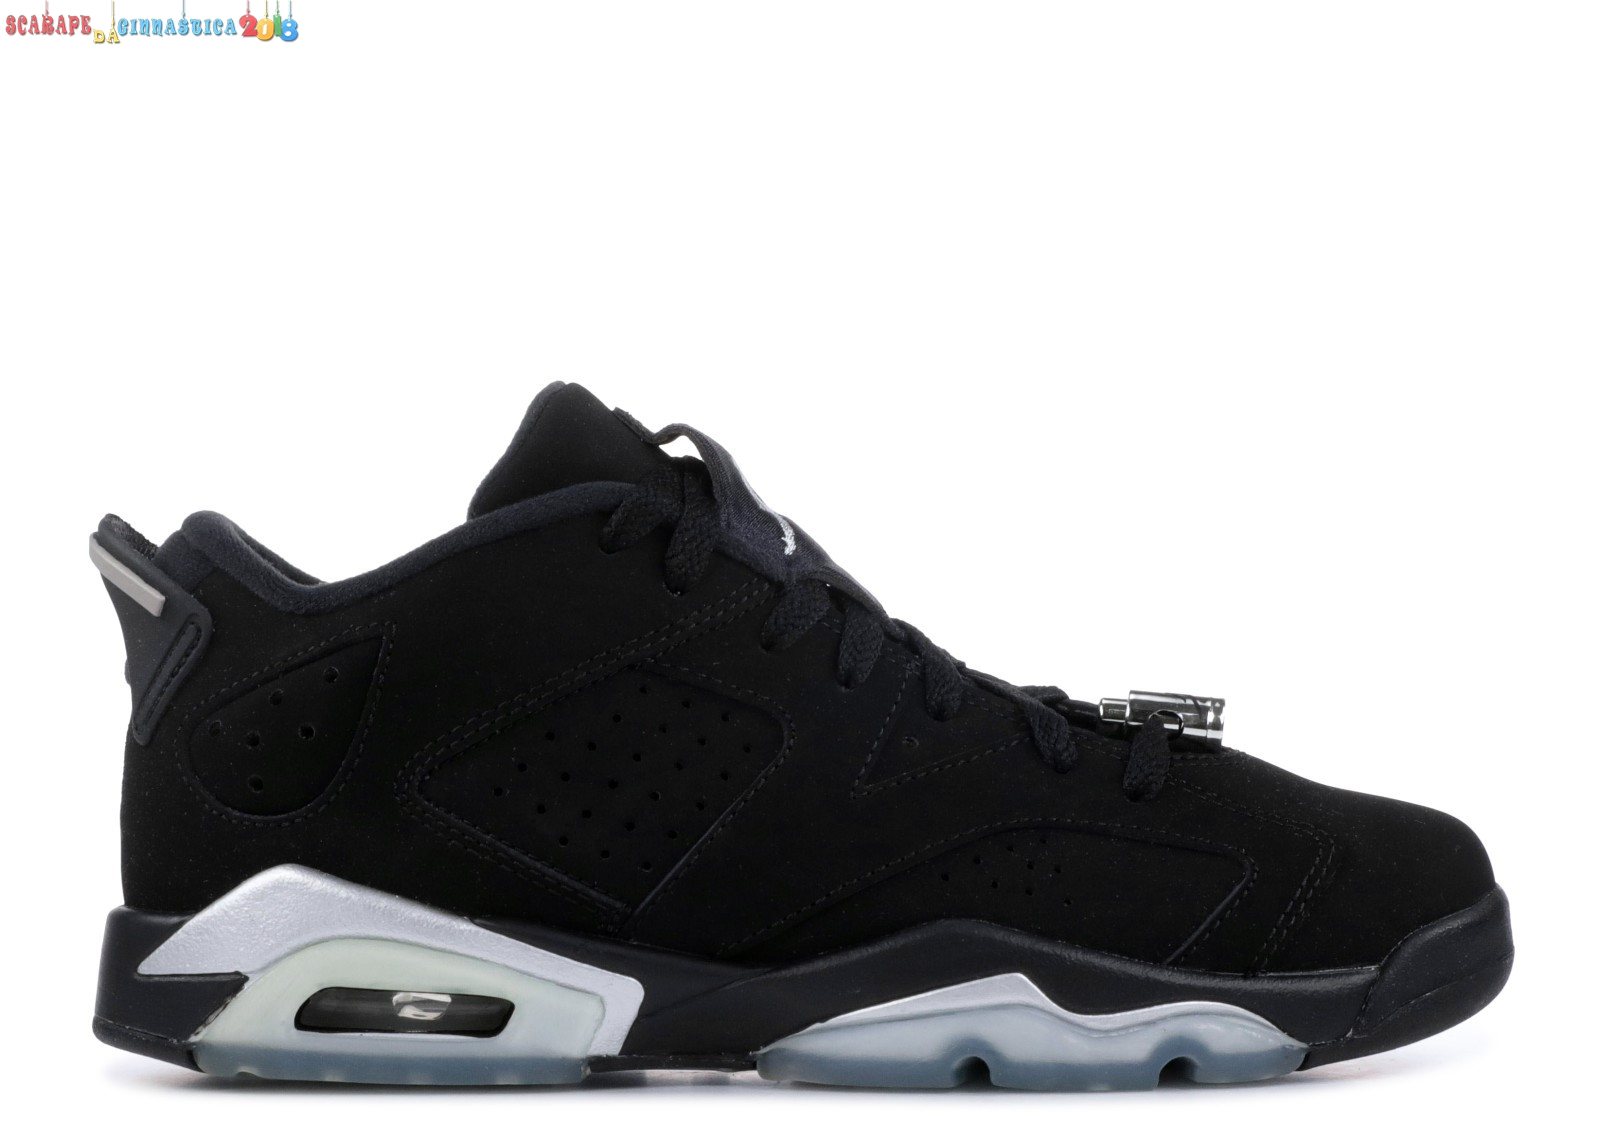 "Scarpa da basket - Air Jordan 6 Retro Low Bg (Gs) ""Chrome"" Nero Metallico Argento (768881-003) - scarpe basket migliori"